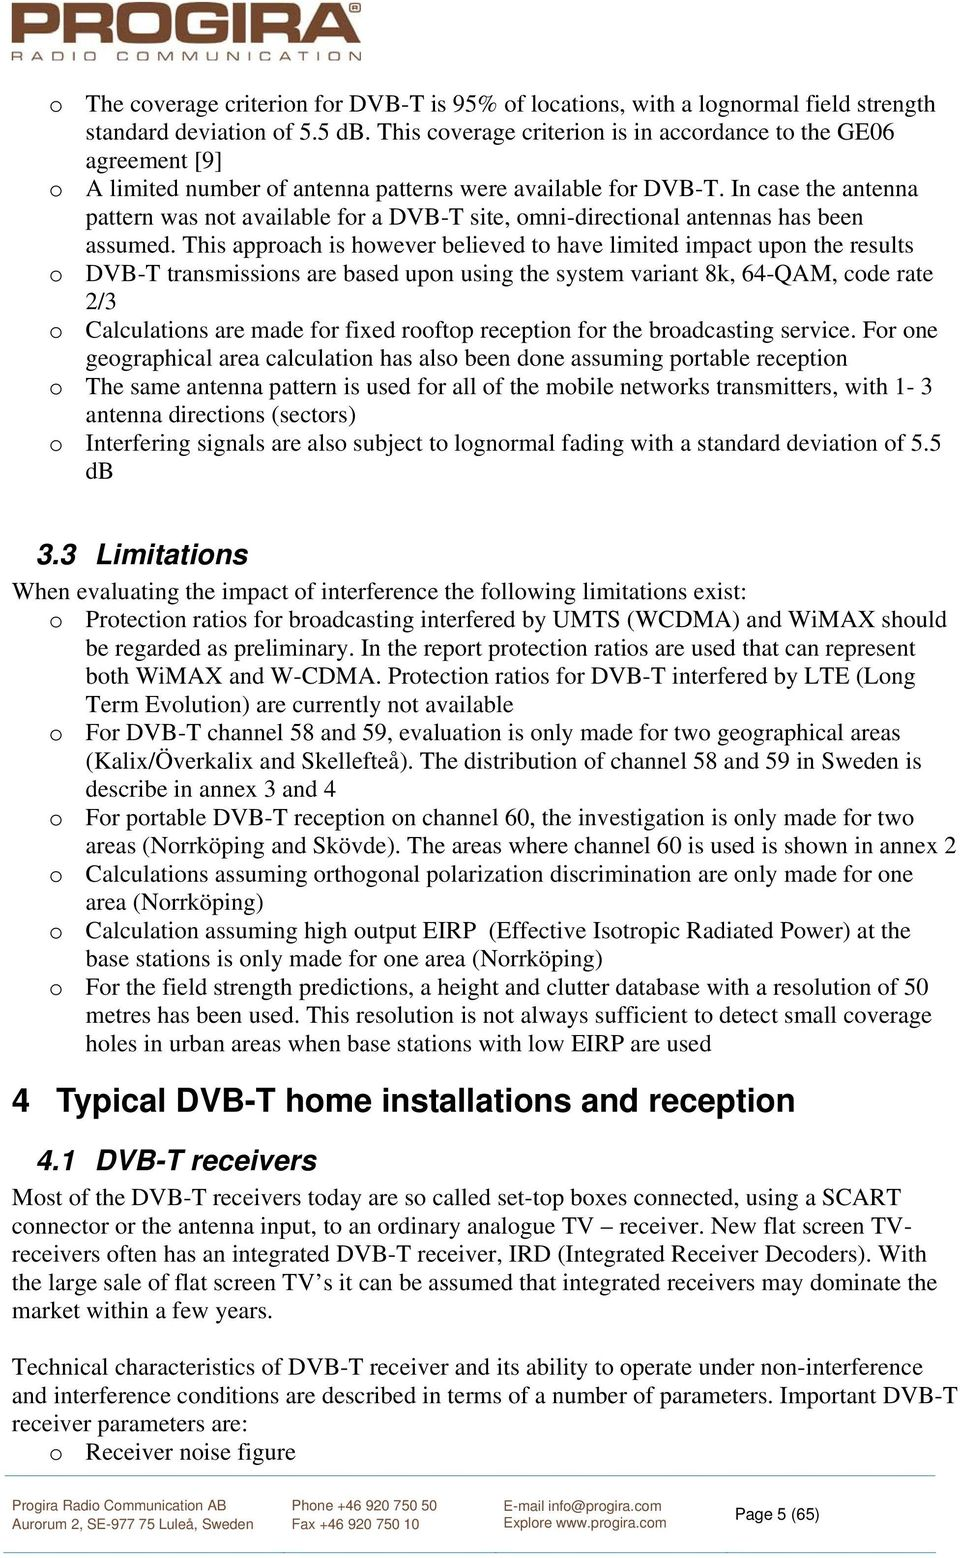 In case the antenna pattern was not available for a DVB-T site, omni-directional antennas has been assumed.